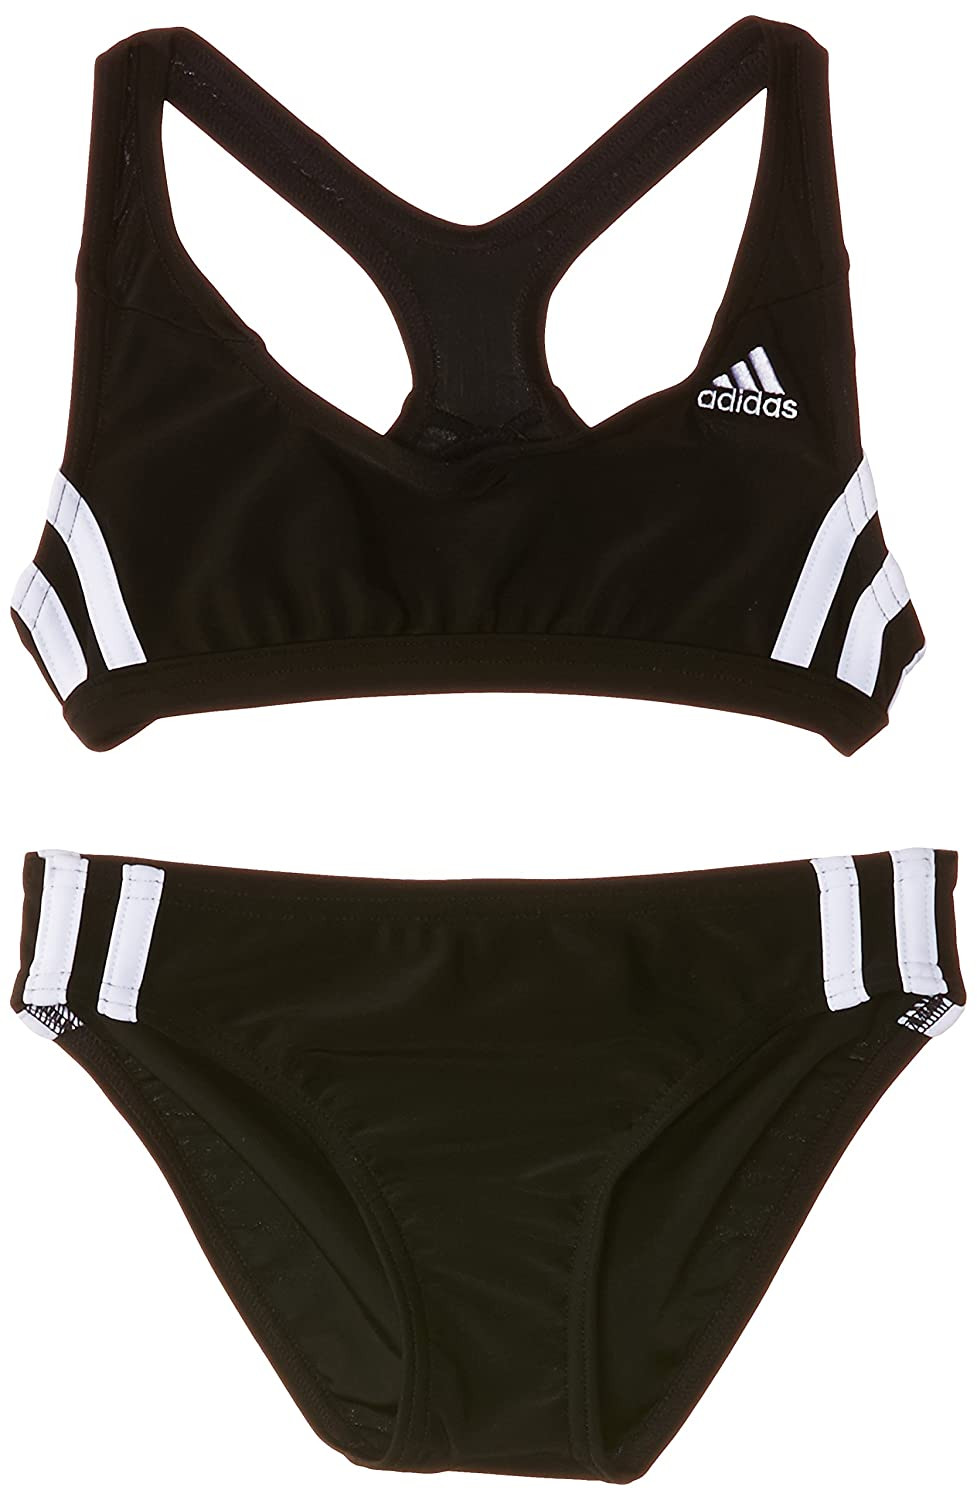 maillot de bain femme sport adidas. Black Bedroom Furniture Sets. Home Design Ideas